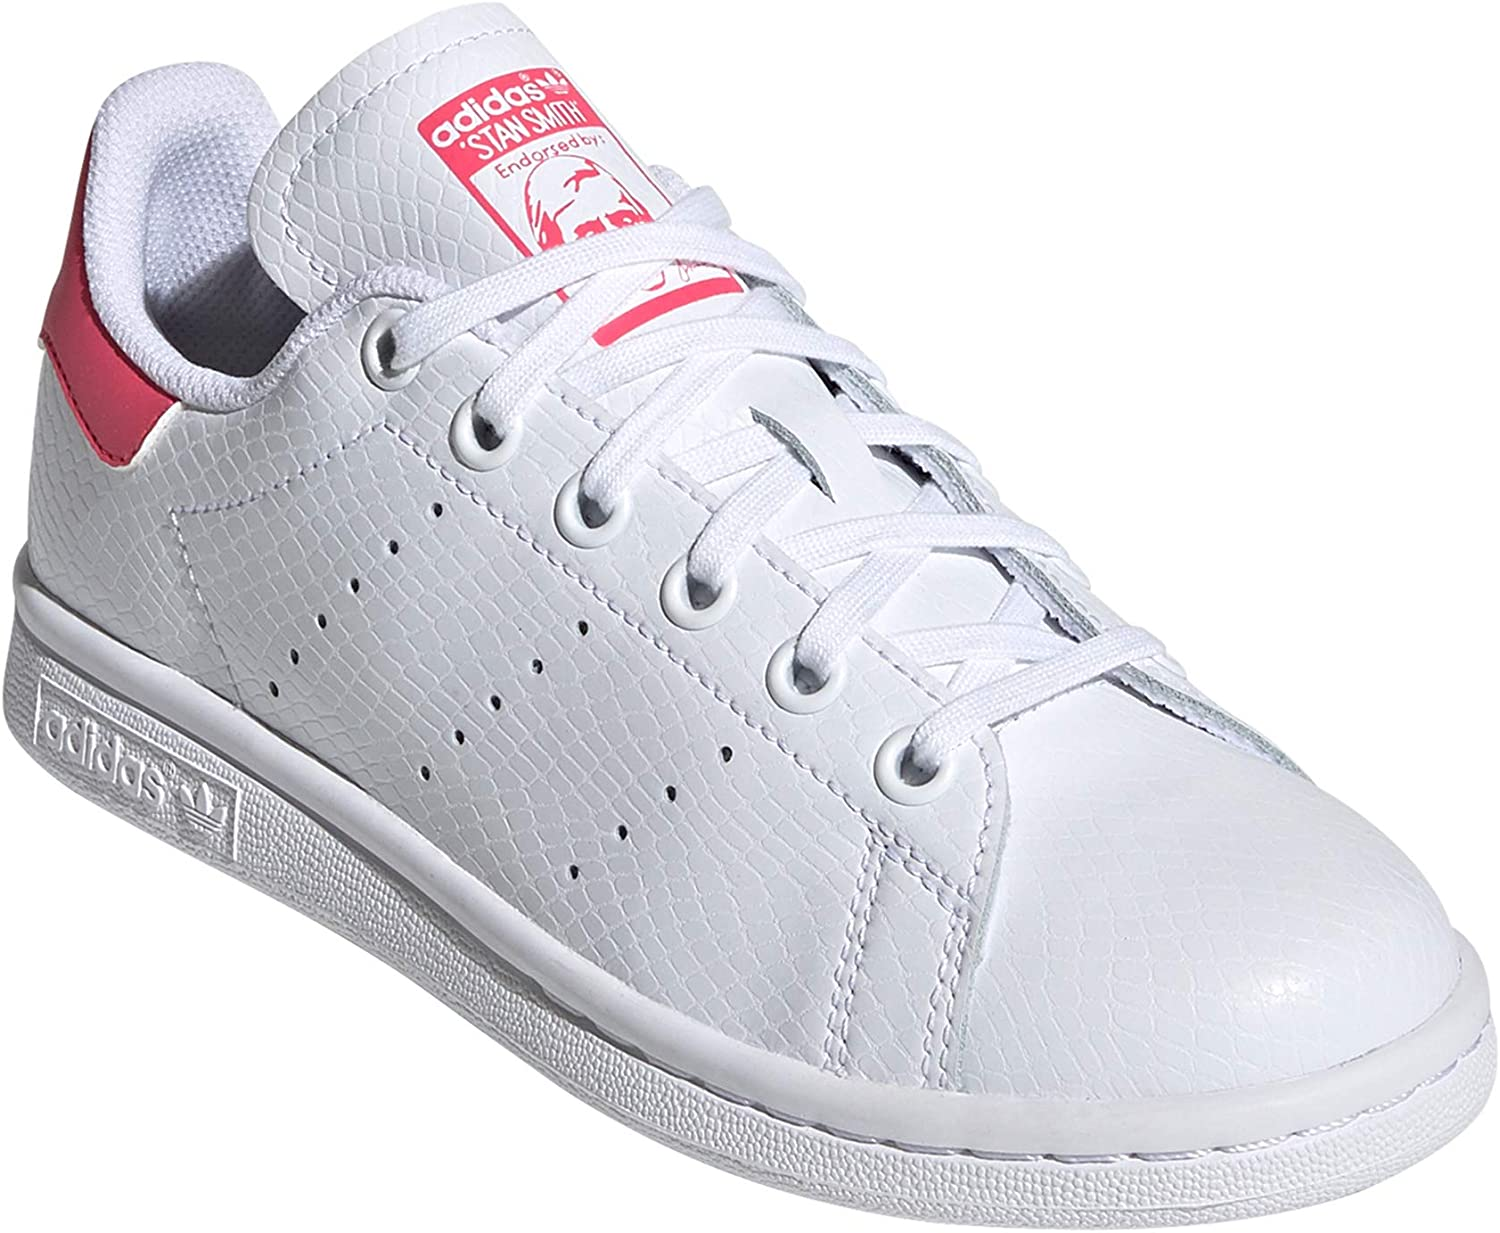 adidas Stan Smith Schuhe Damen. Low-Top, Trainer, Sneaker.Ms White Bold Pink